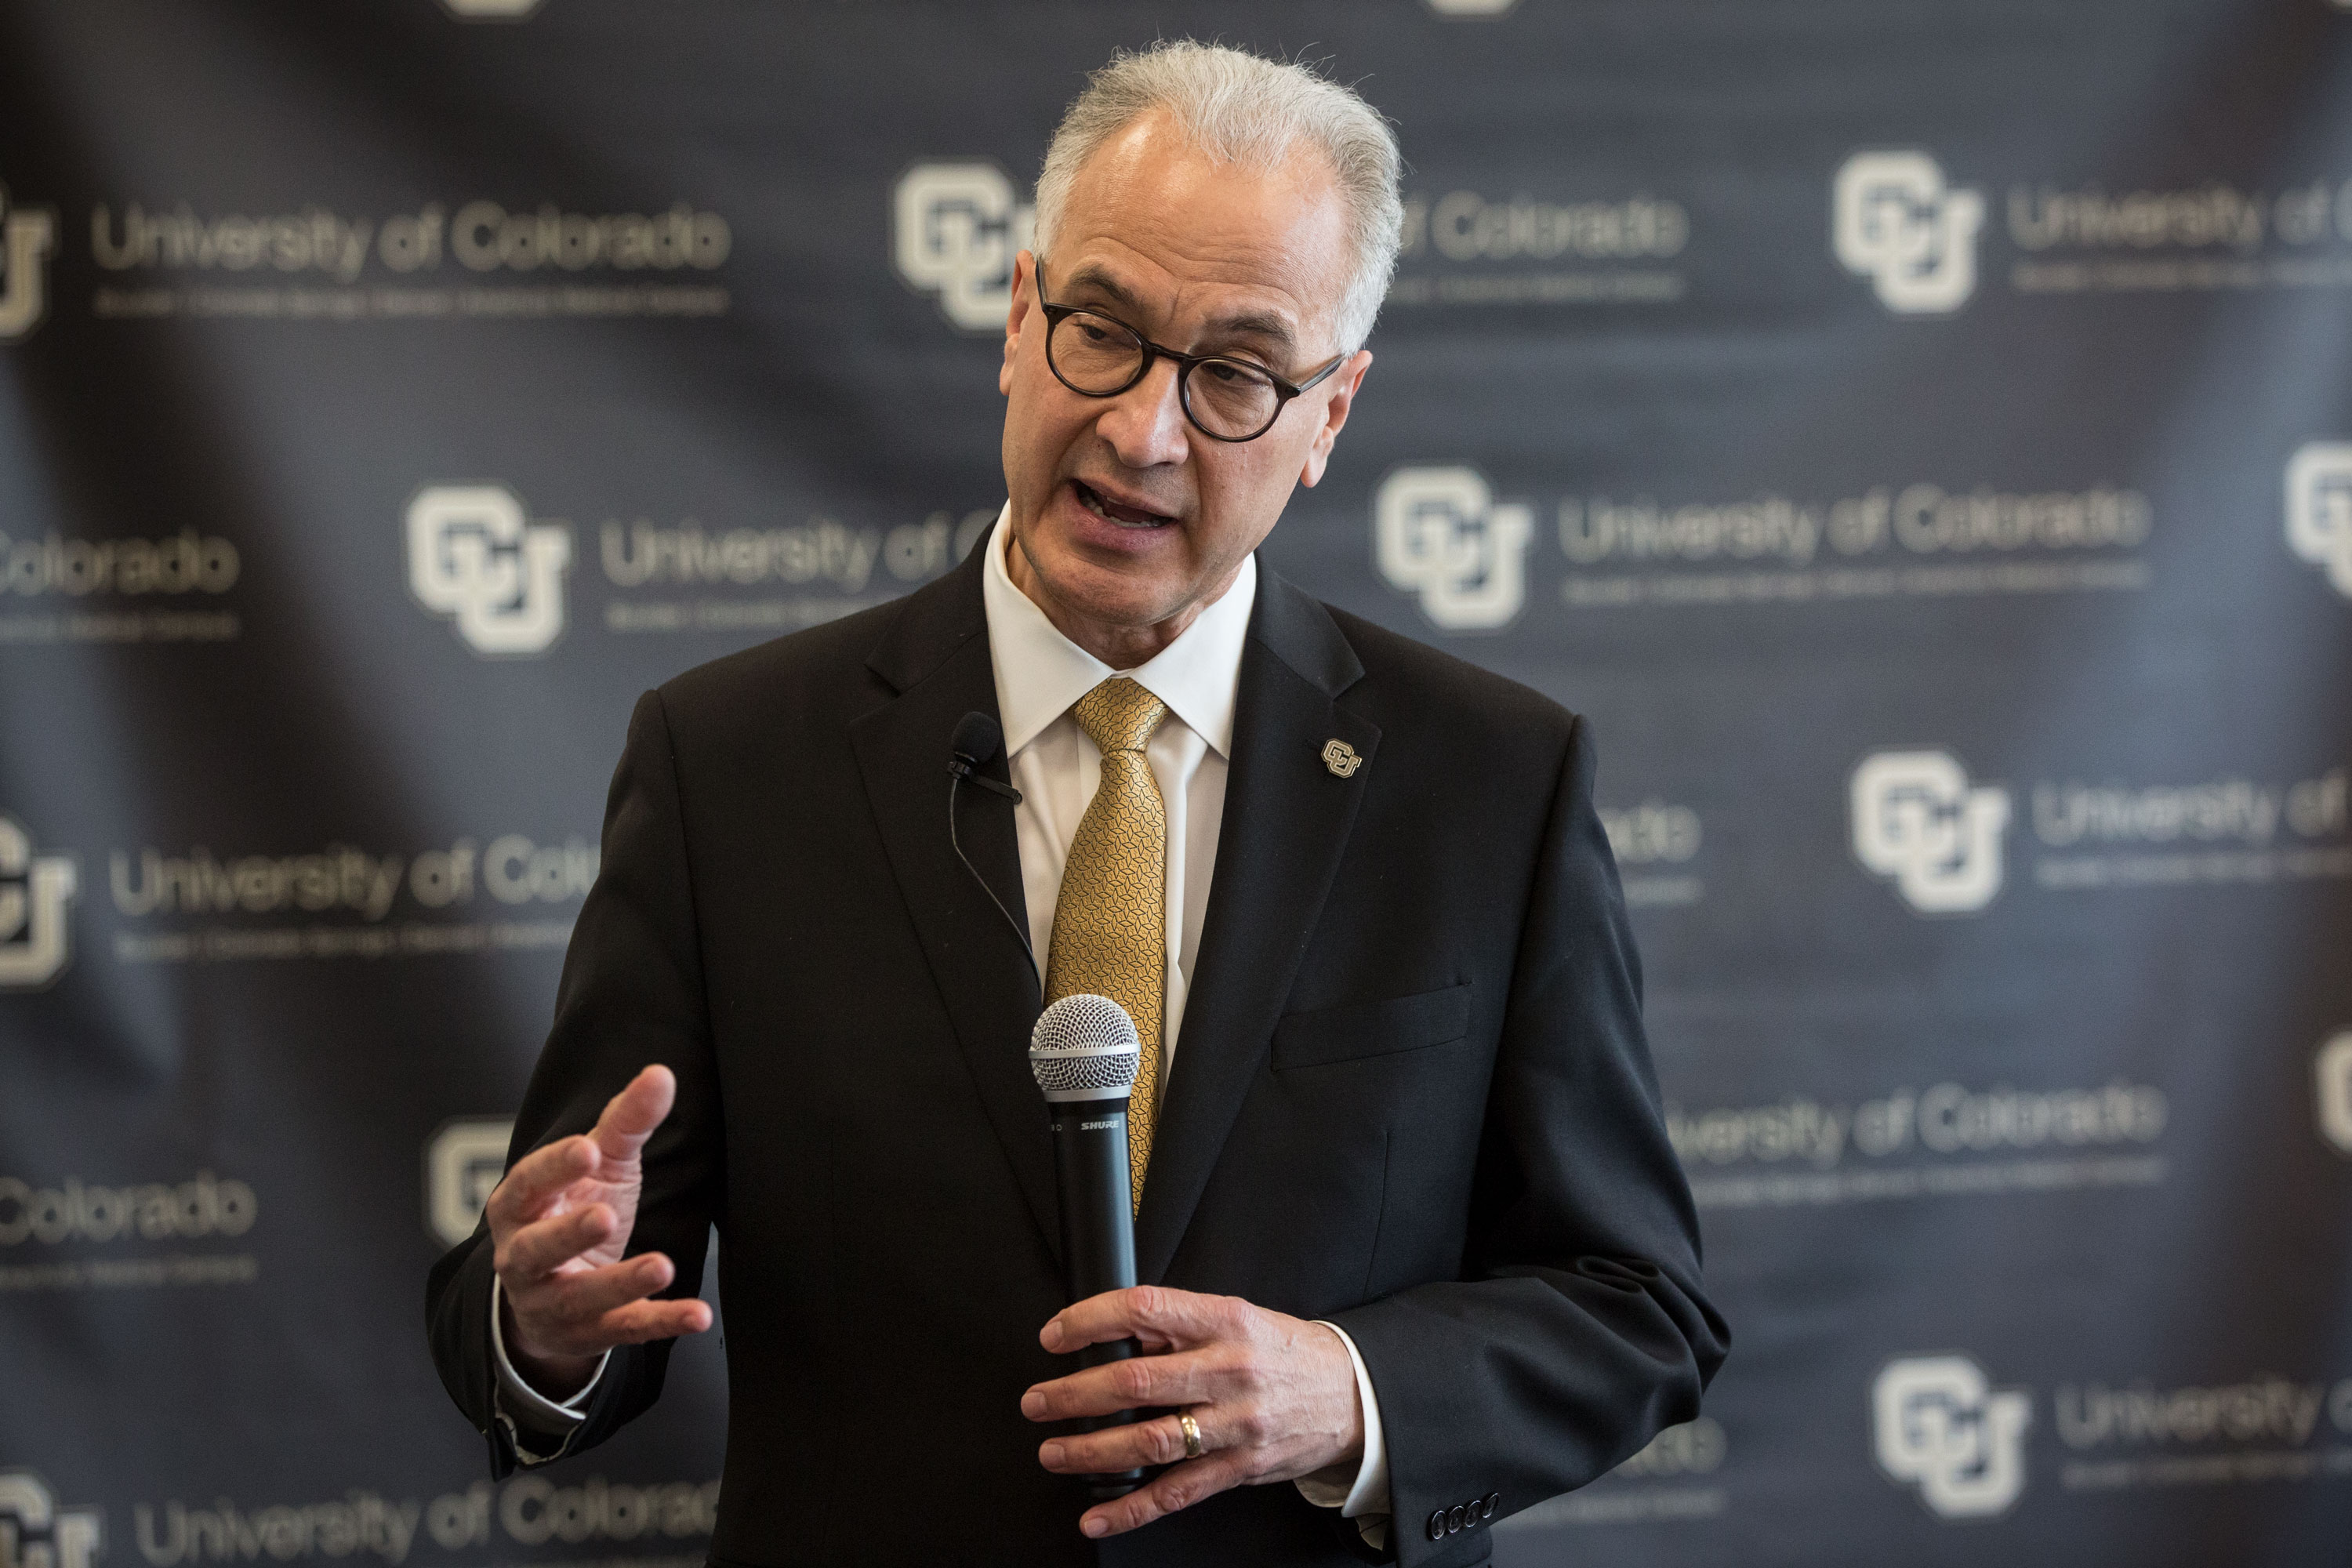 <p>Mark Kennedy speaks with reporters after winning approval from the CU Board of Regents to be the next president of the University of Colorado system, at the CU Anschutz Medical Campus on Thursday, May 2, 2019.</p>